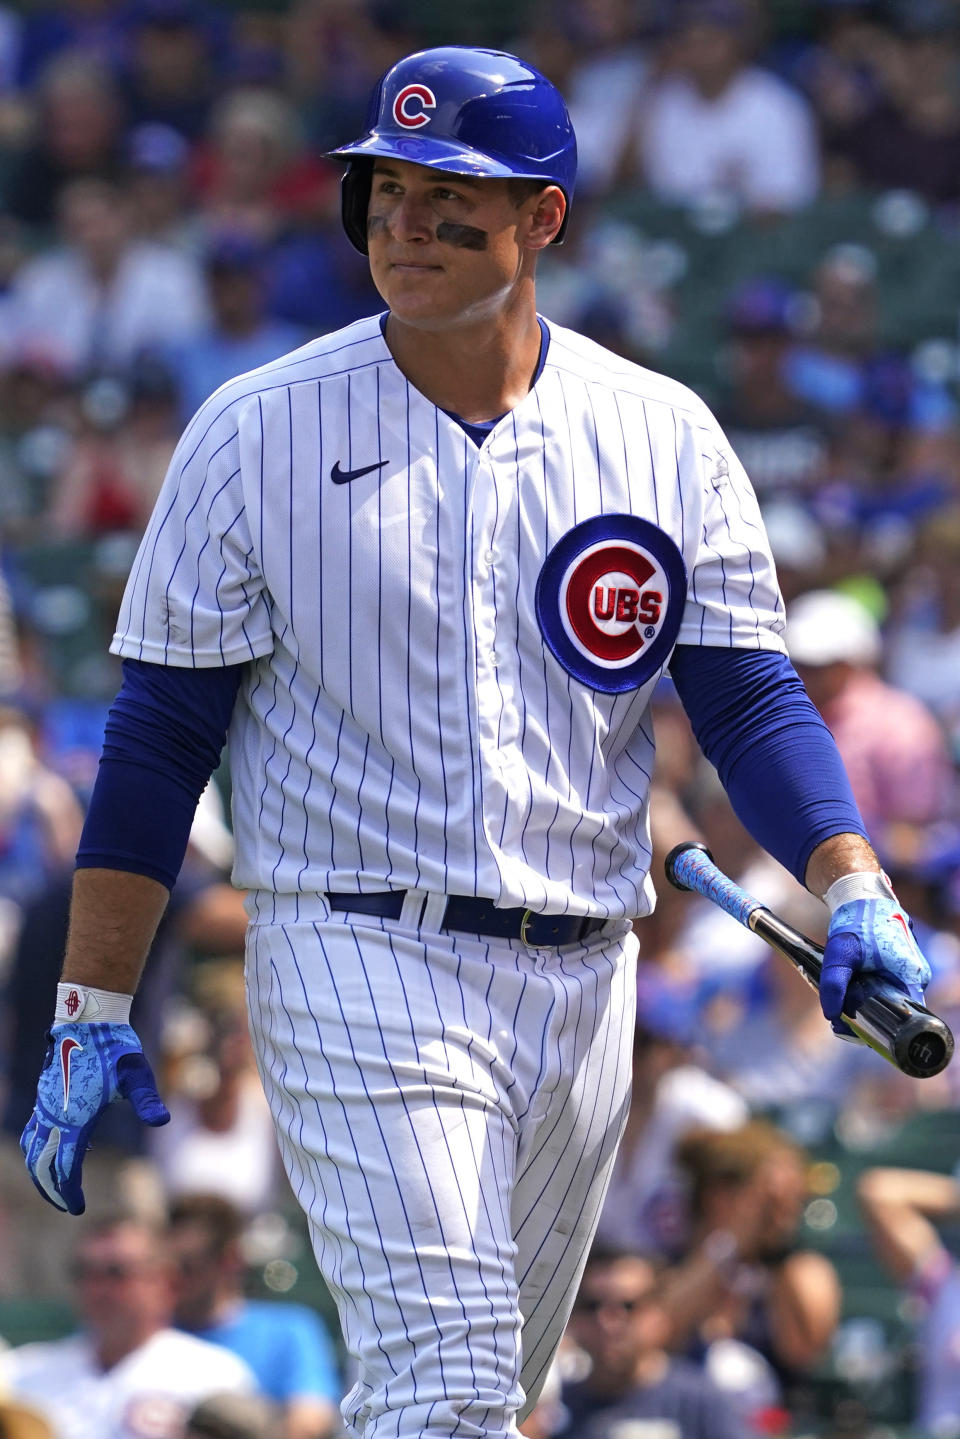 Chicago Cubs' Anthony Rizzo looks to the field after striking out swinging during the sixth inning of a baseball game against the Arizona Diamondbacks in Chicago, Saturday, July 24, 2021. (AP Photo/Nam Y. Huh)